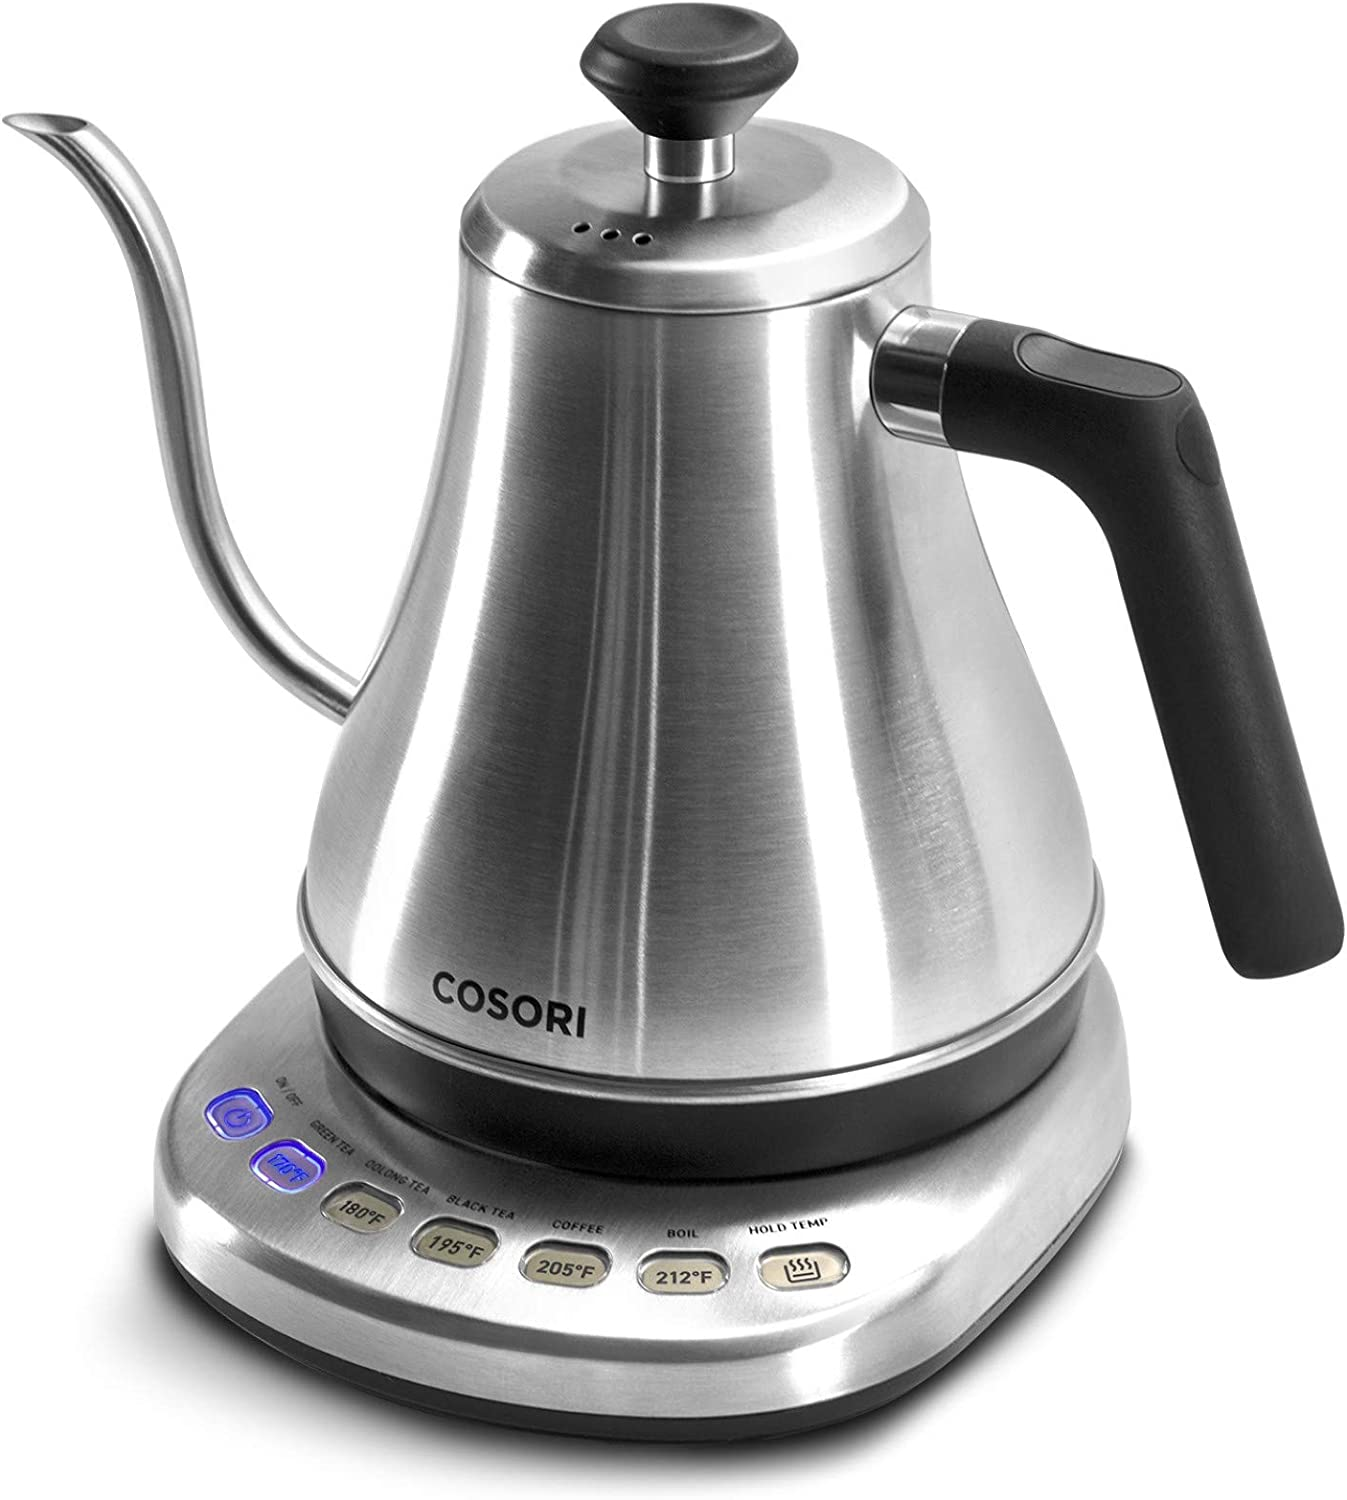 COSORI Electric Gooseneck Kettle with 5 Variable Presets, Pour Over Coffee Kettle